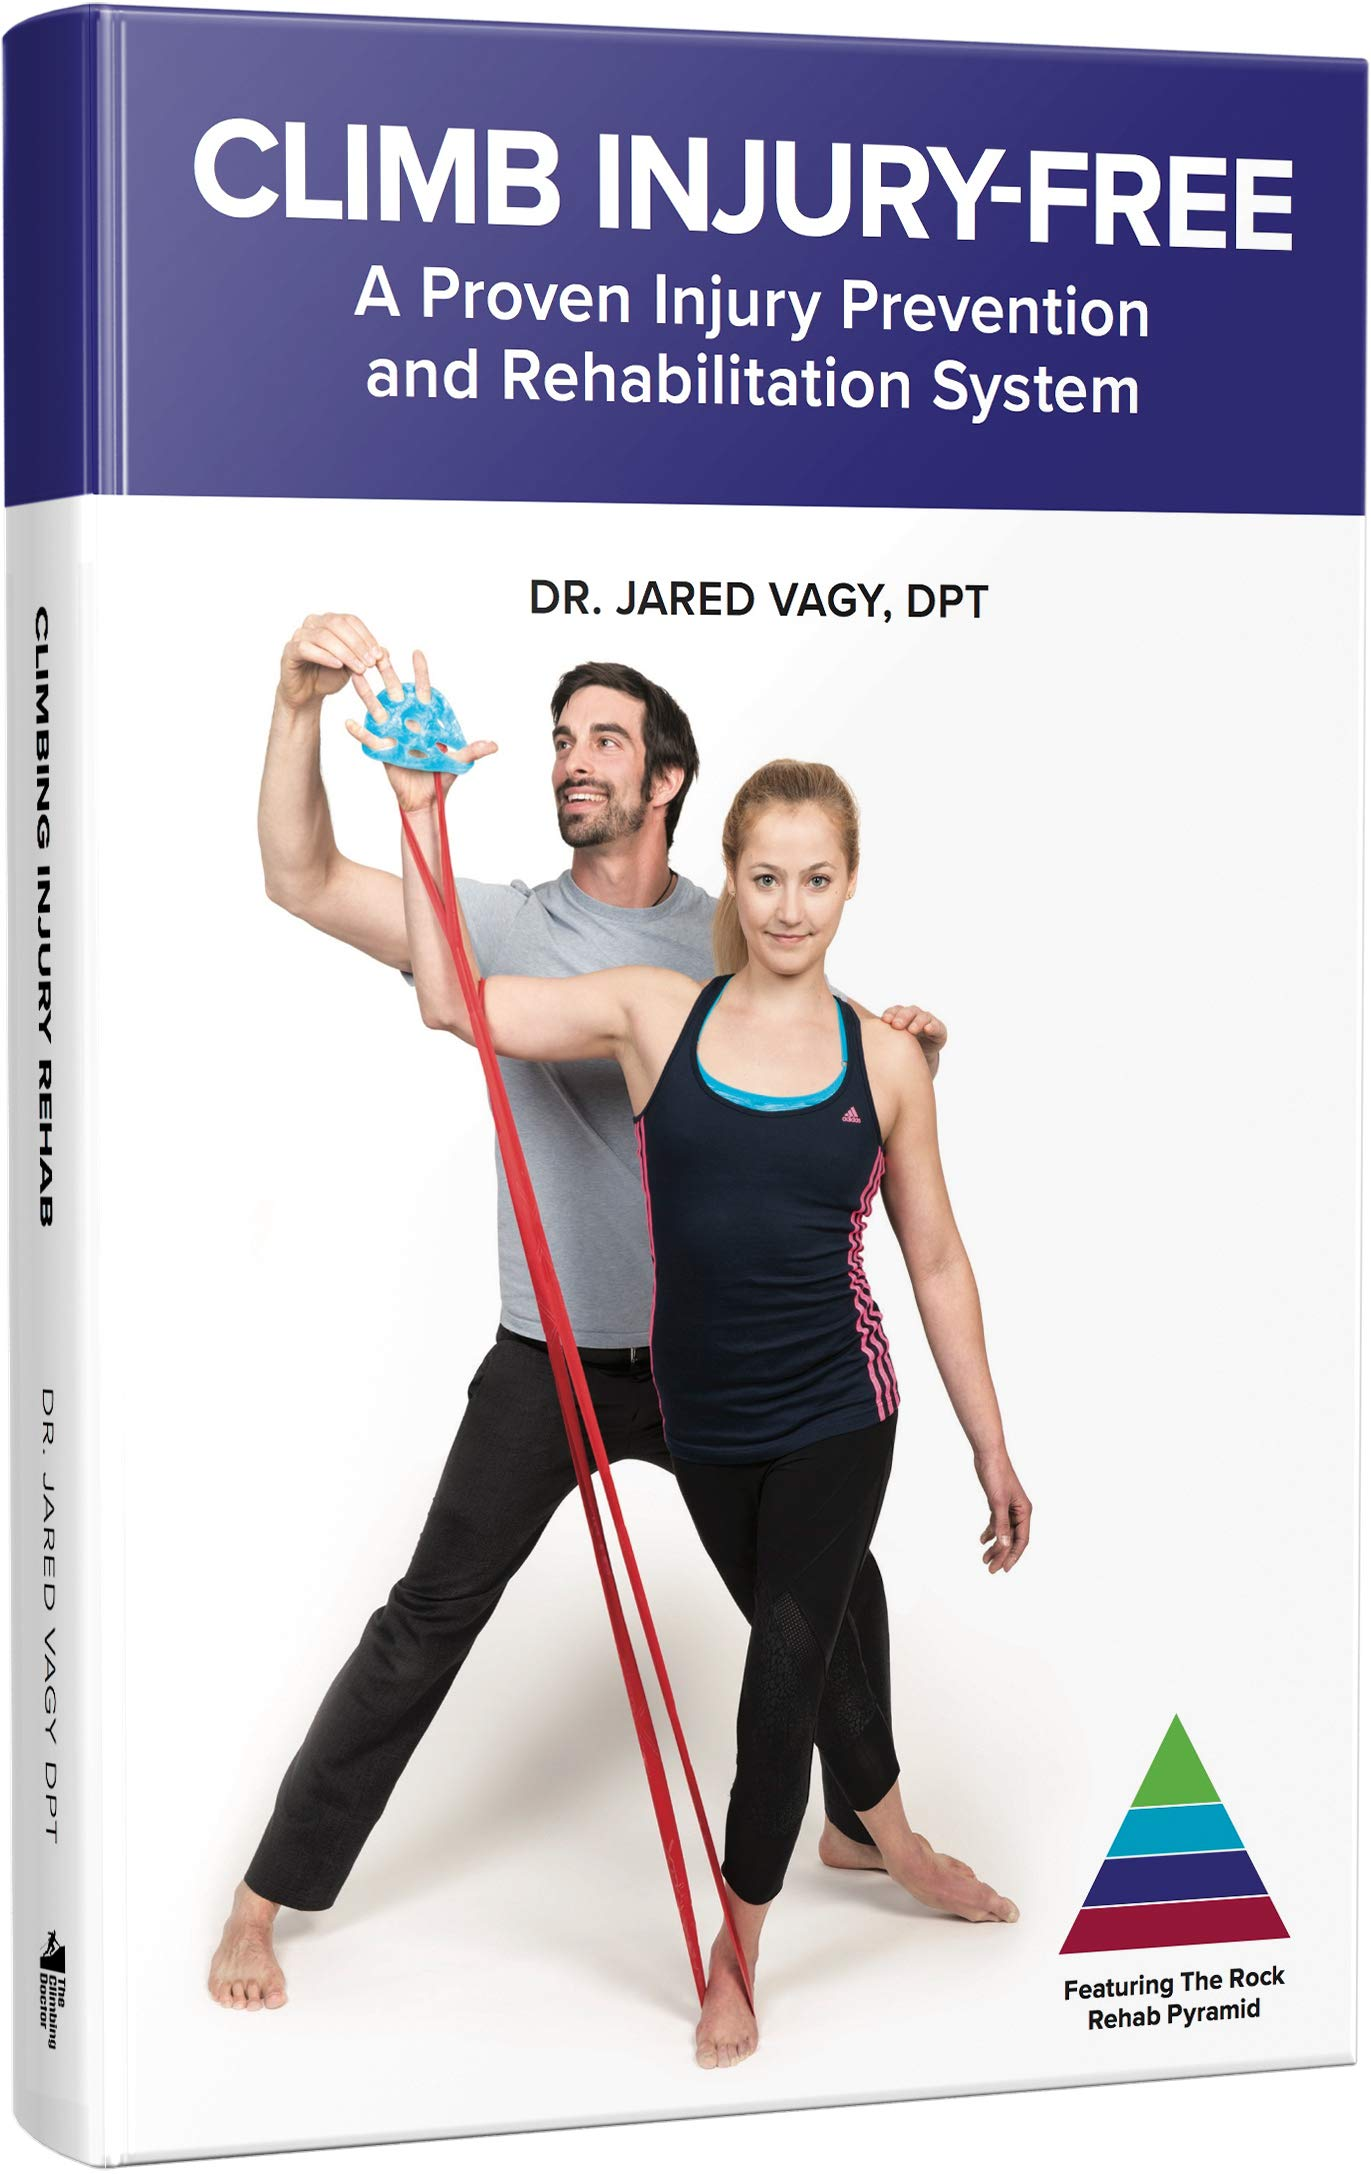 Climb Injury-Free: A Proven Injury Prevention and Rehabilitation System by